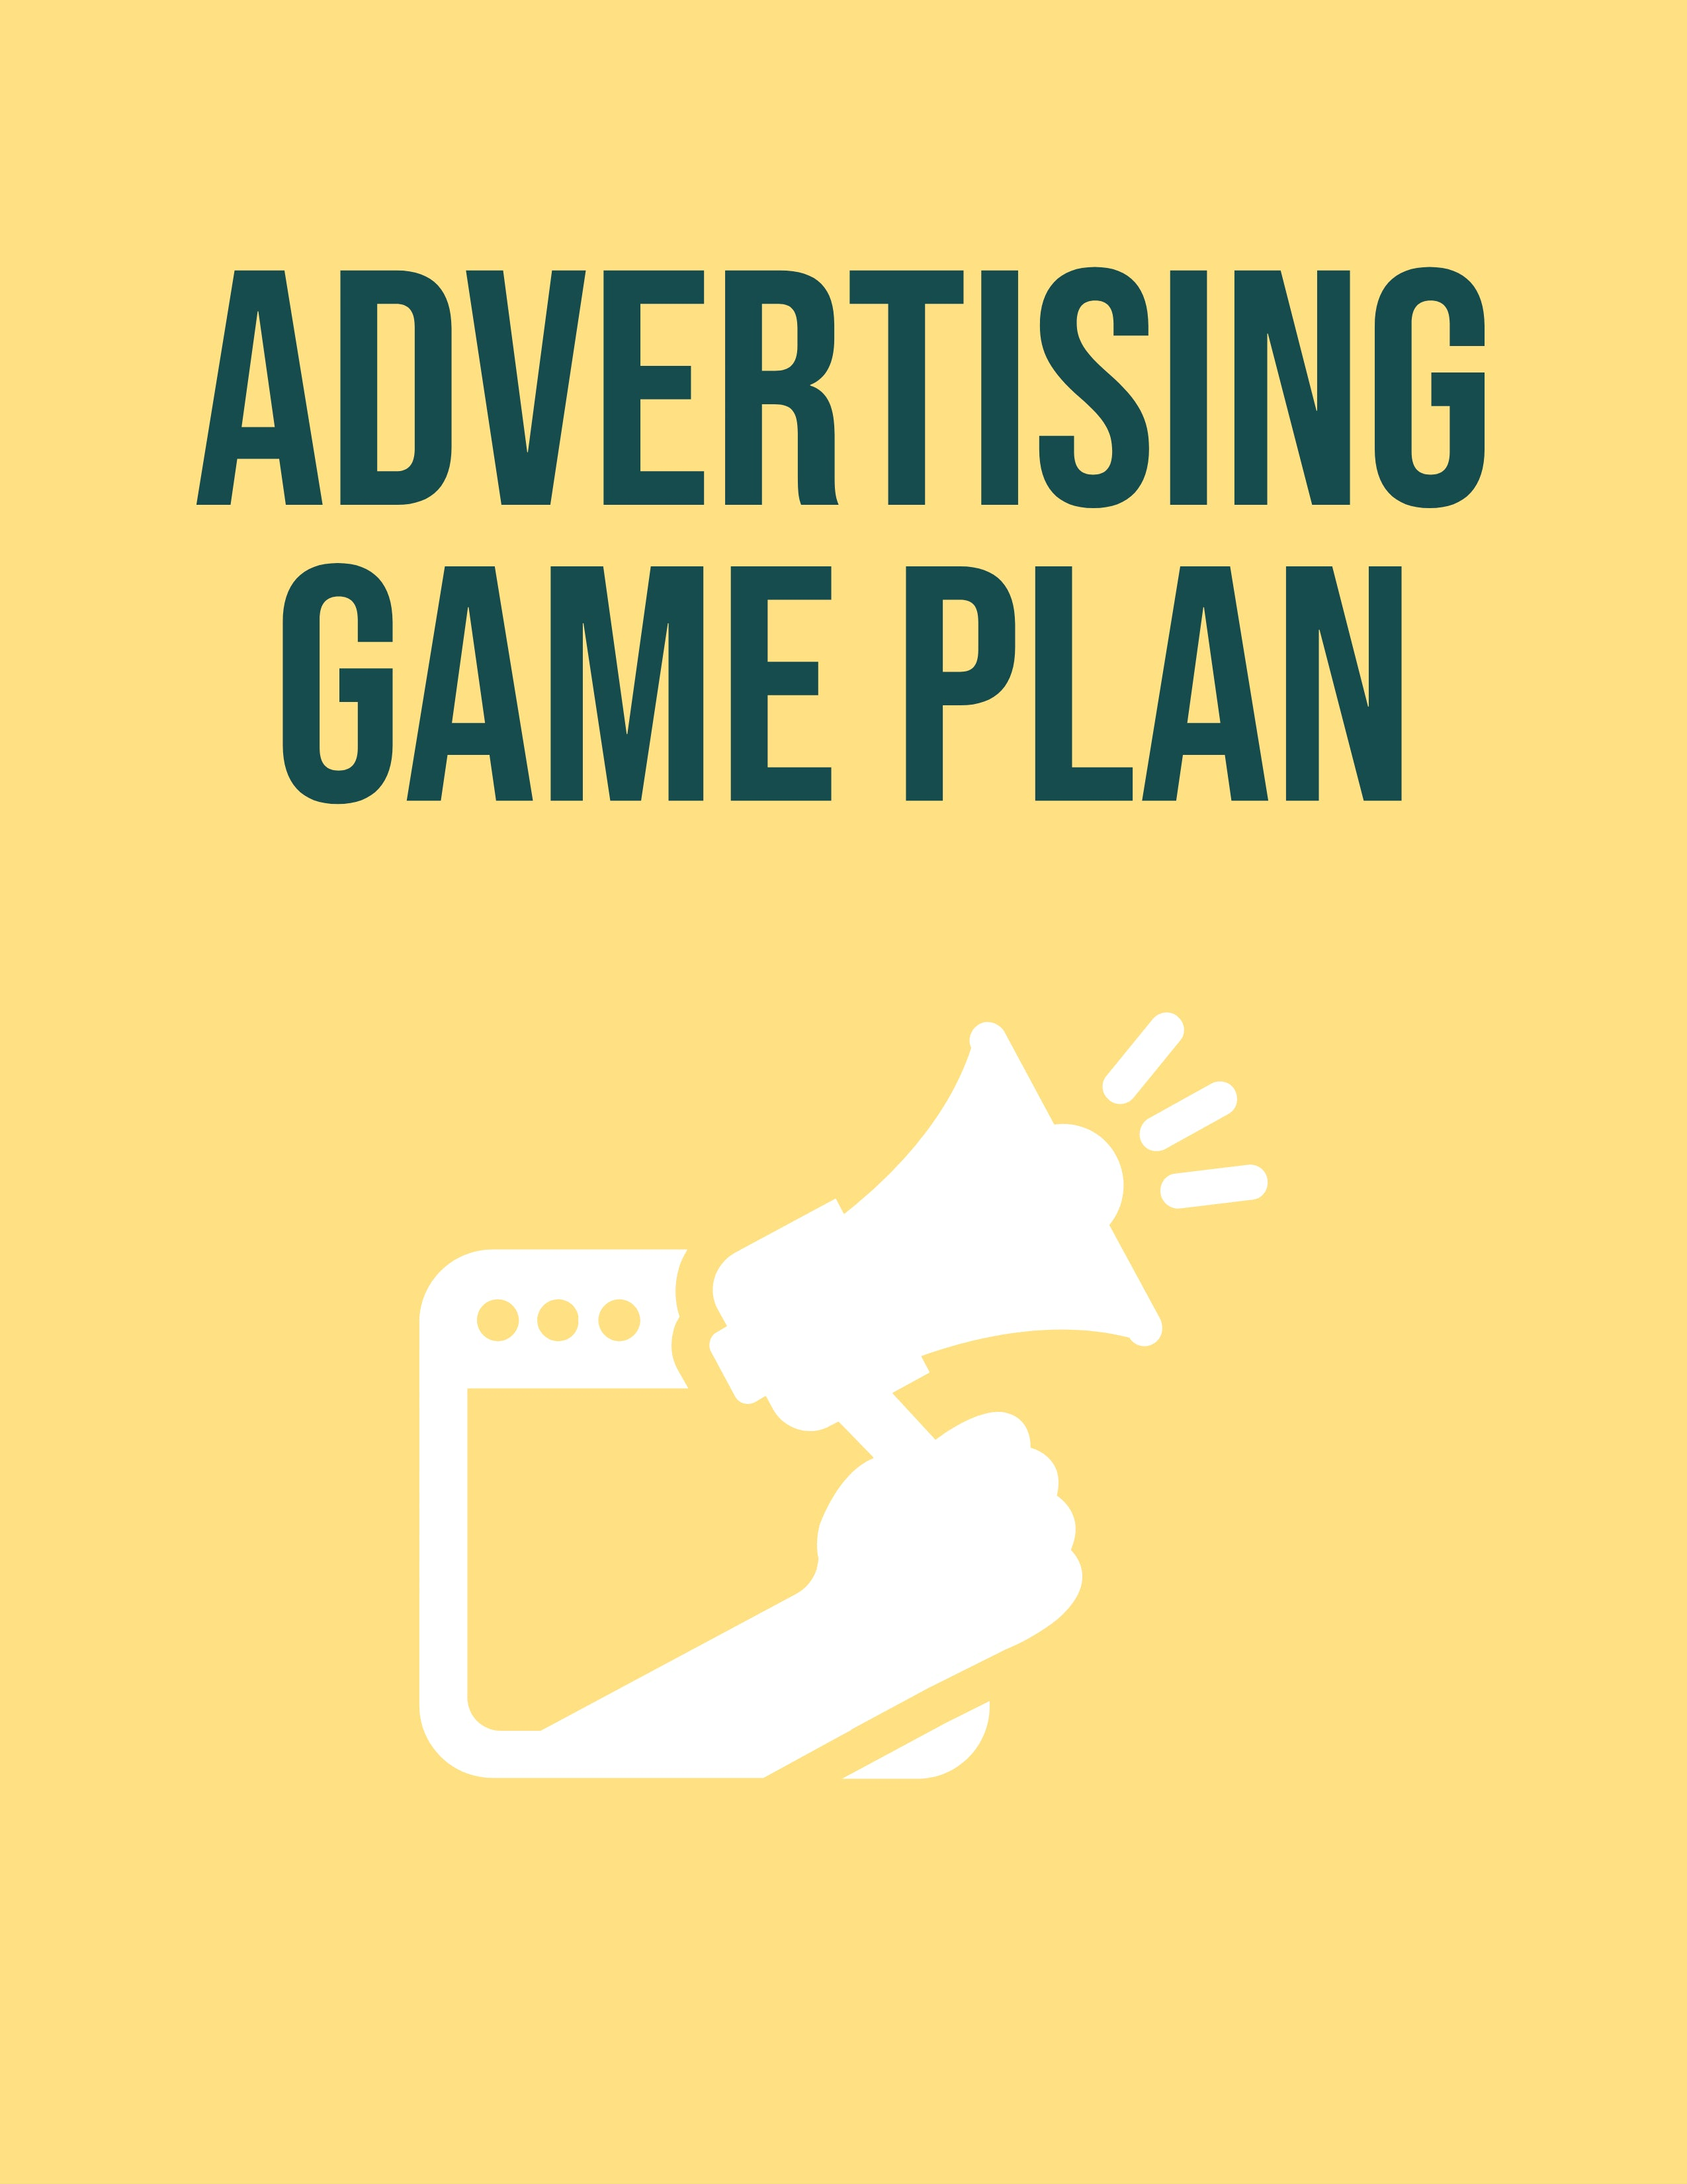 Advertising Game Plan